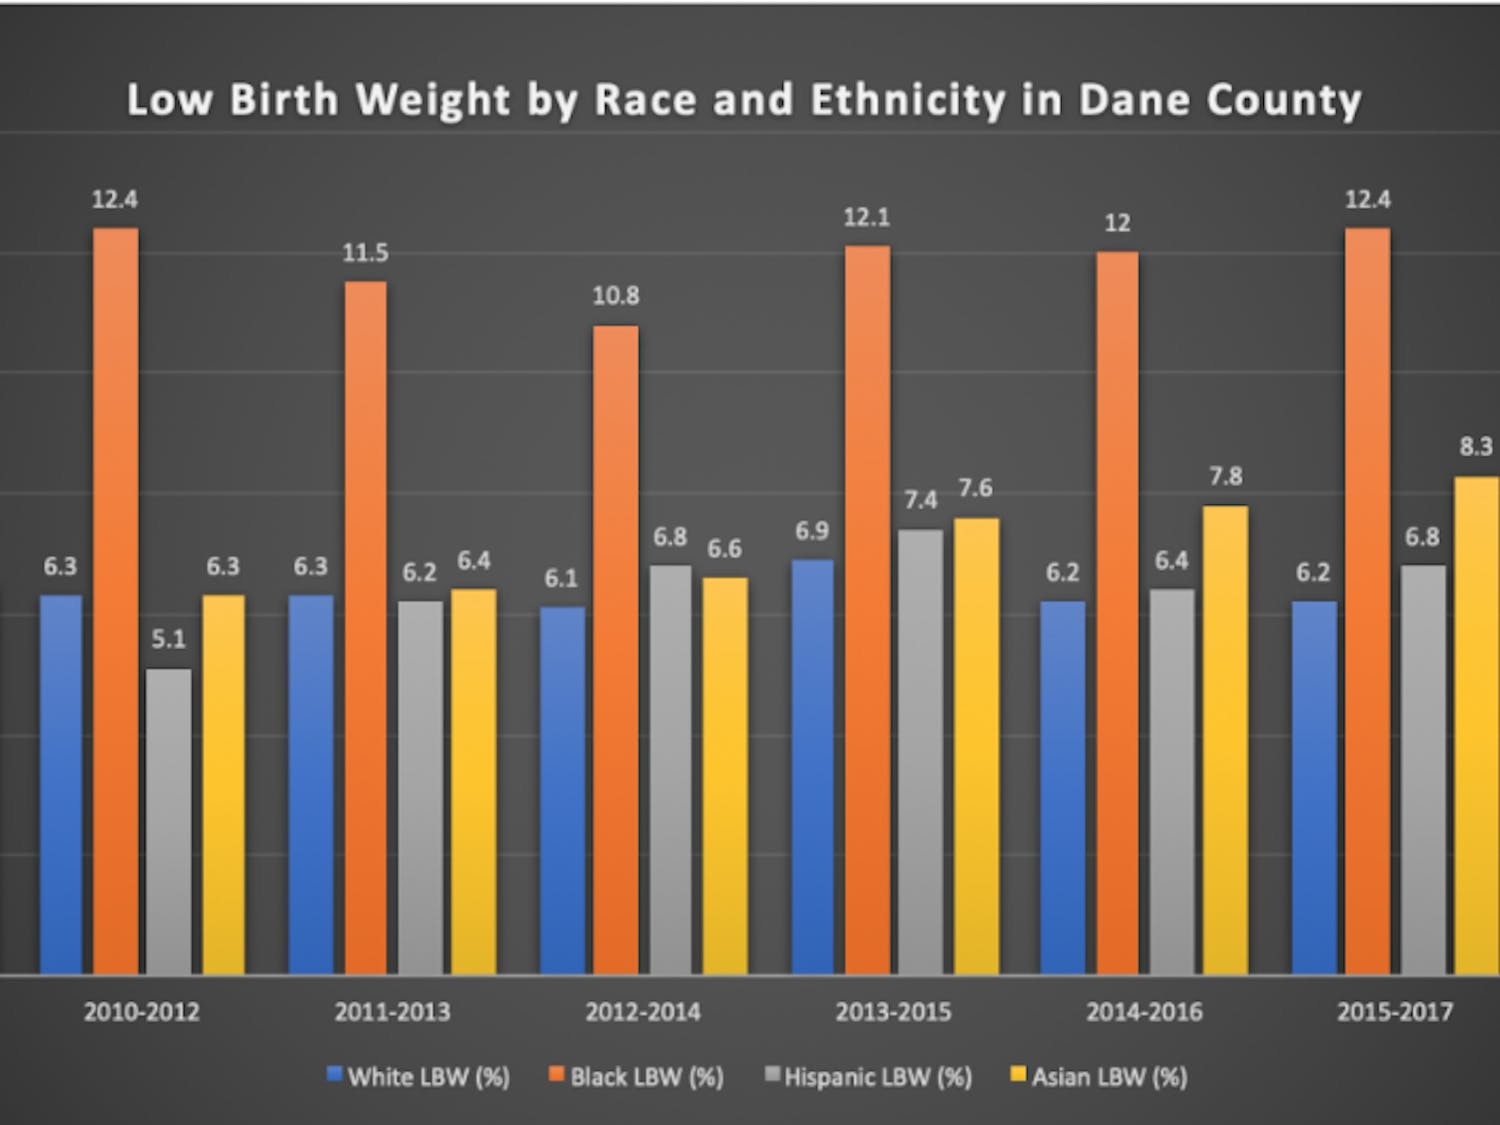 The rate for black infant mortality increased in 2009 and has been at an alarmingly high rate since.